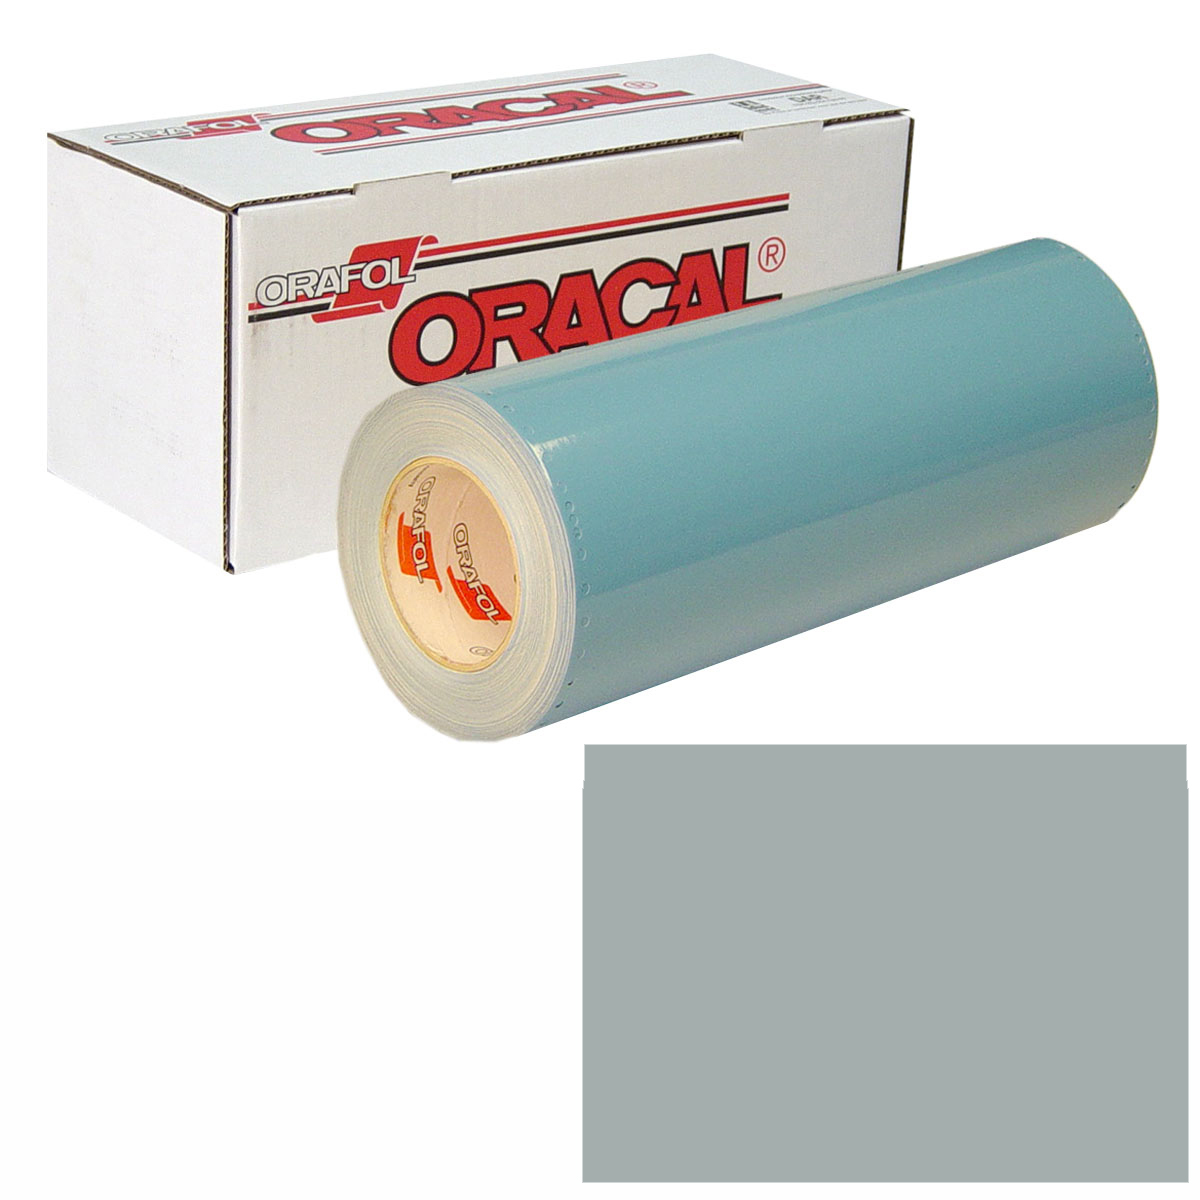 ORACAL 751 30in X 10yd 071 Grey